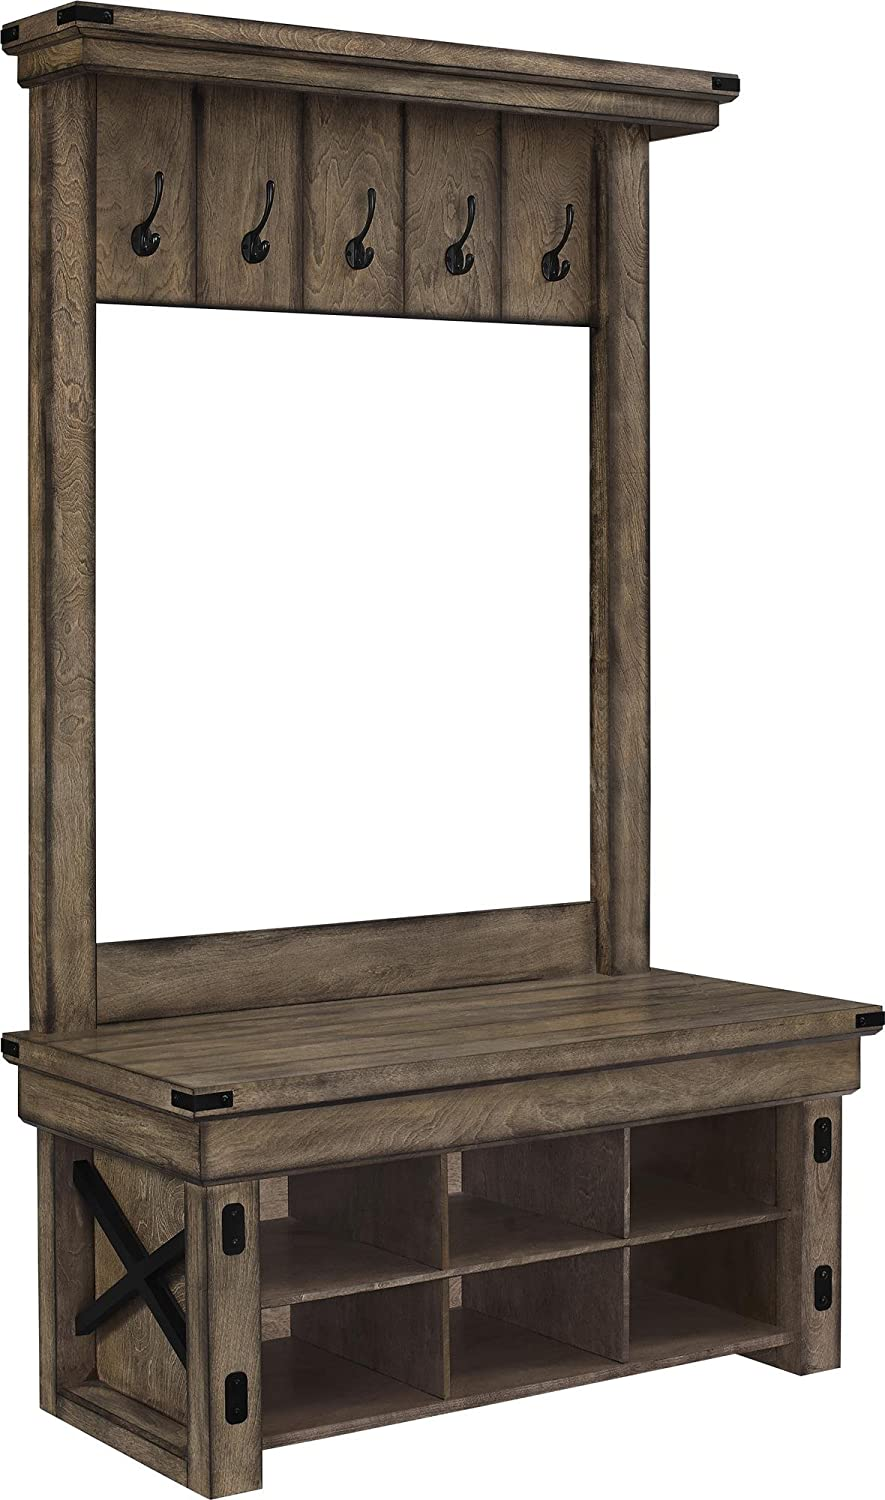 Ameriwood Home Wildwood Wood Veneer Entryway Hall Tree W Vintage Story Cushion Shabby Patchwork 60x60cm 2 Storage Bench Rustic Gray Kitchen Dining